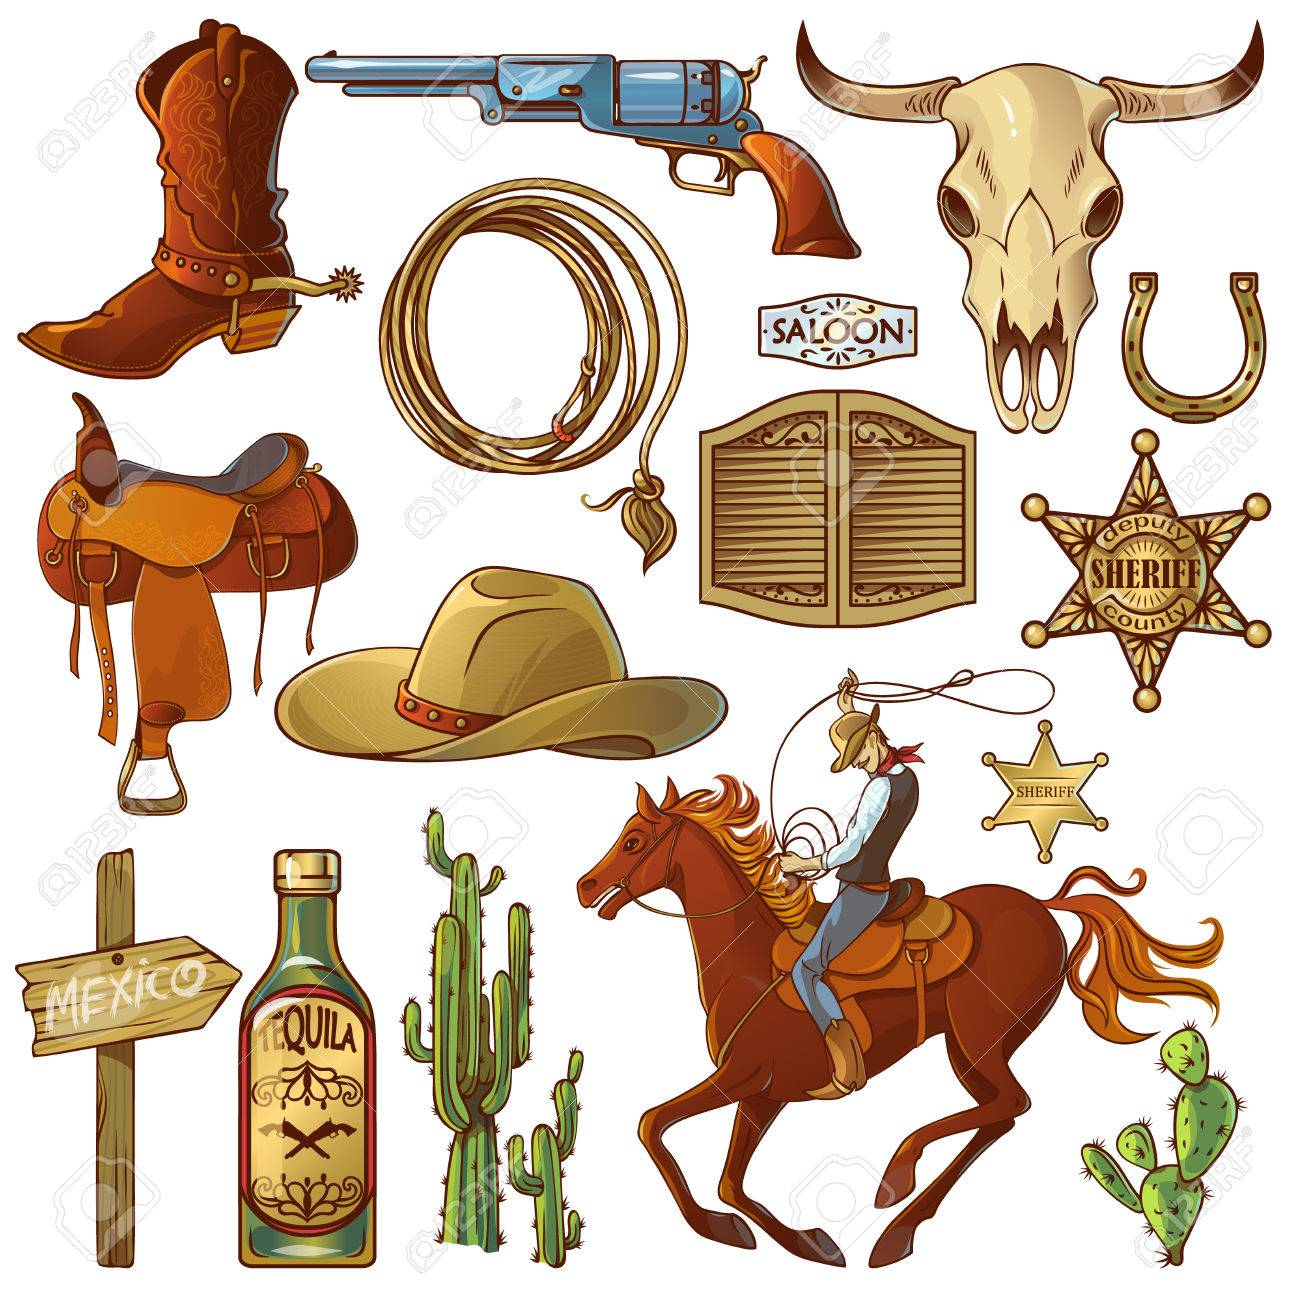 Wild west elements set with icons cowboy icons cowboys equipment..